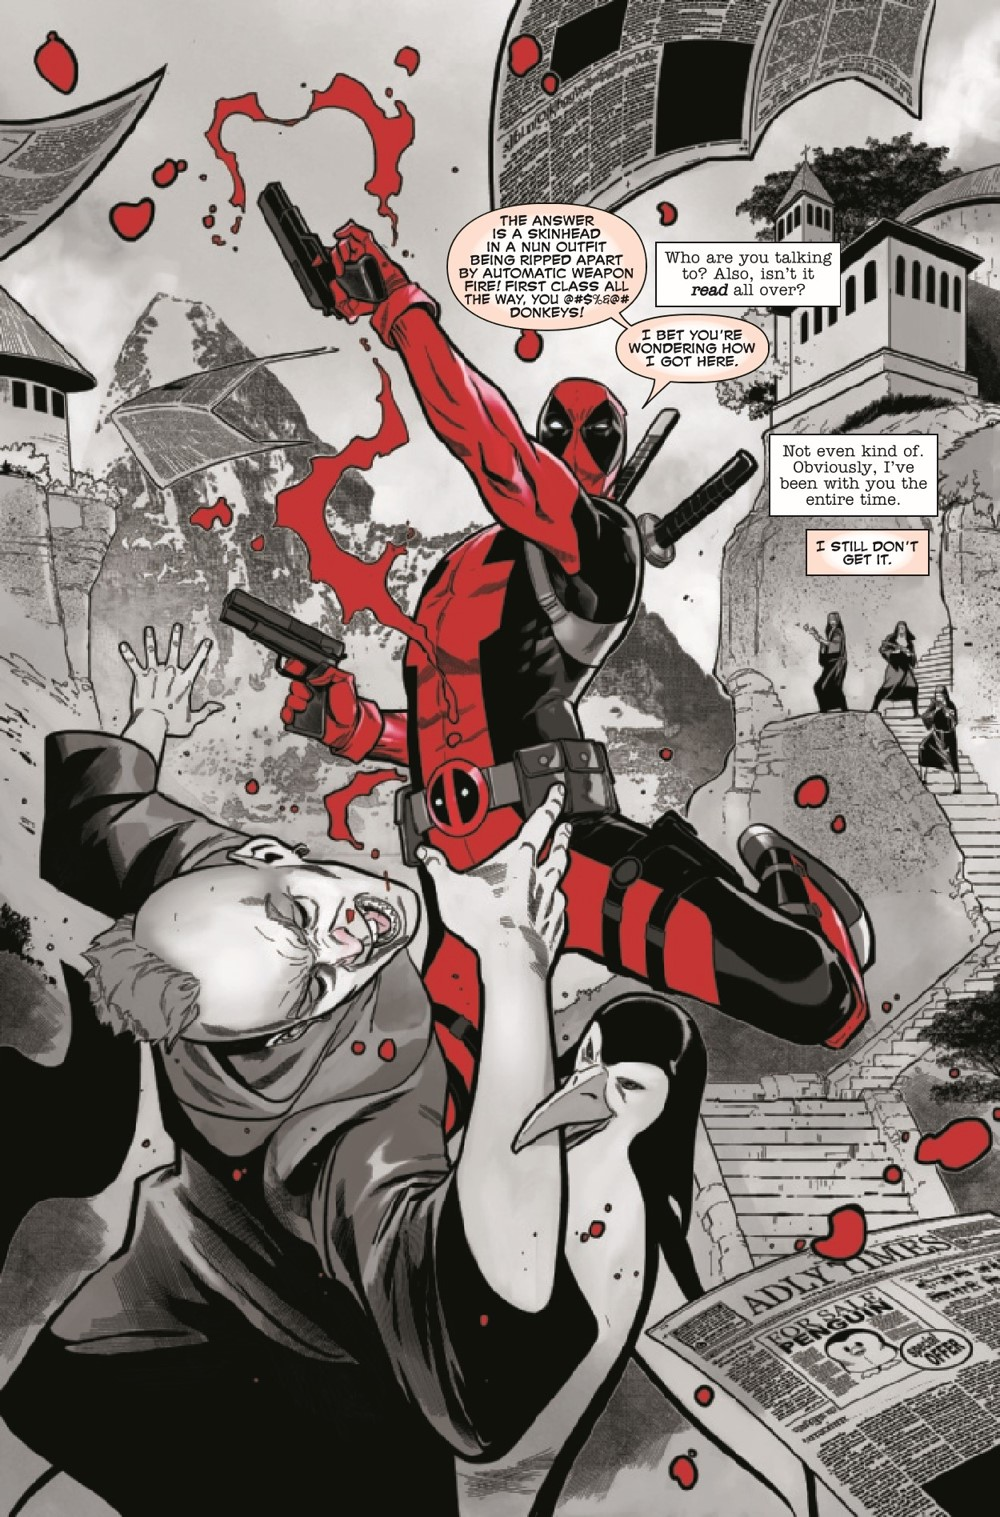 DPOOLBLKWHBL2021003_Preview-4 ComicList Previews: DEADPOOL BLACK WHITE AND BLOOD #3 (OF 4)